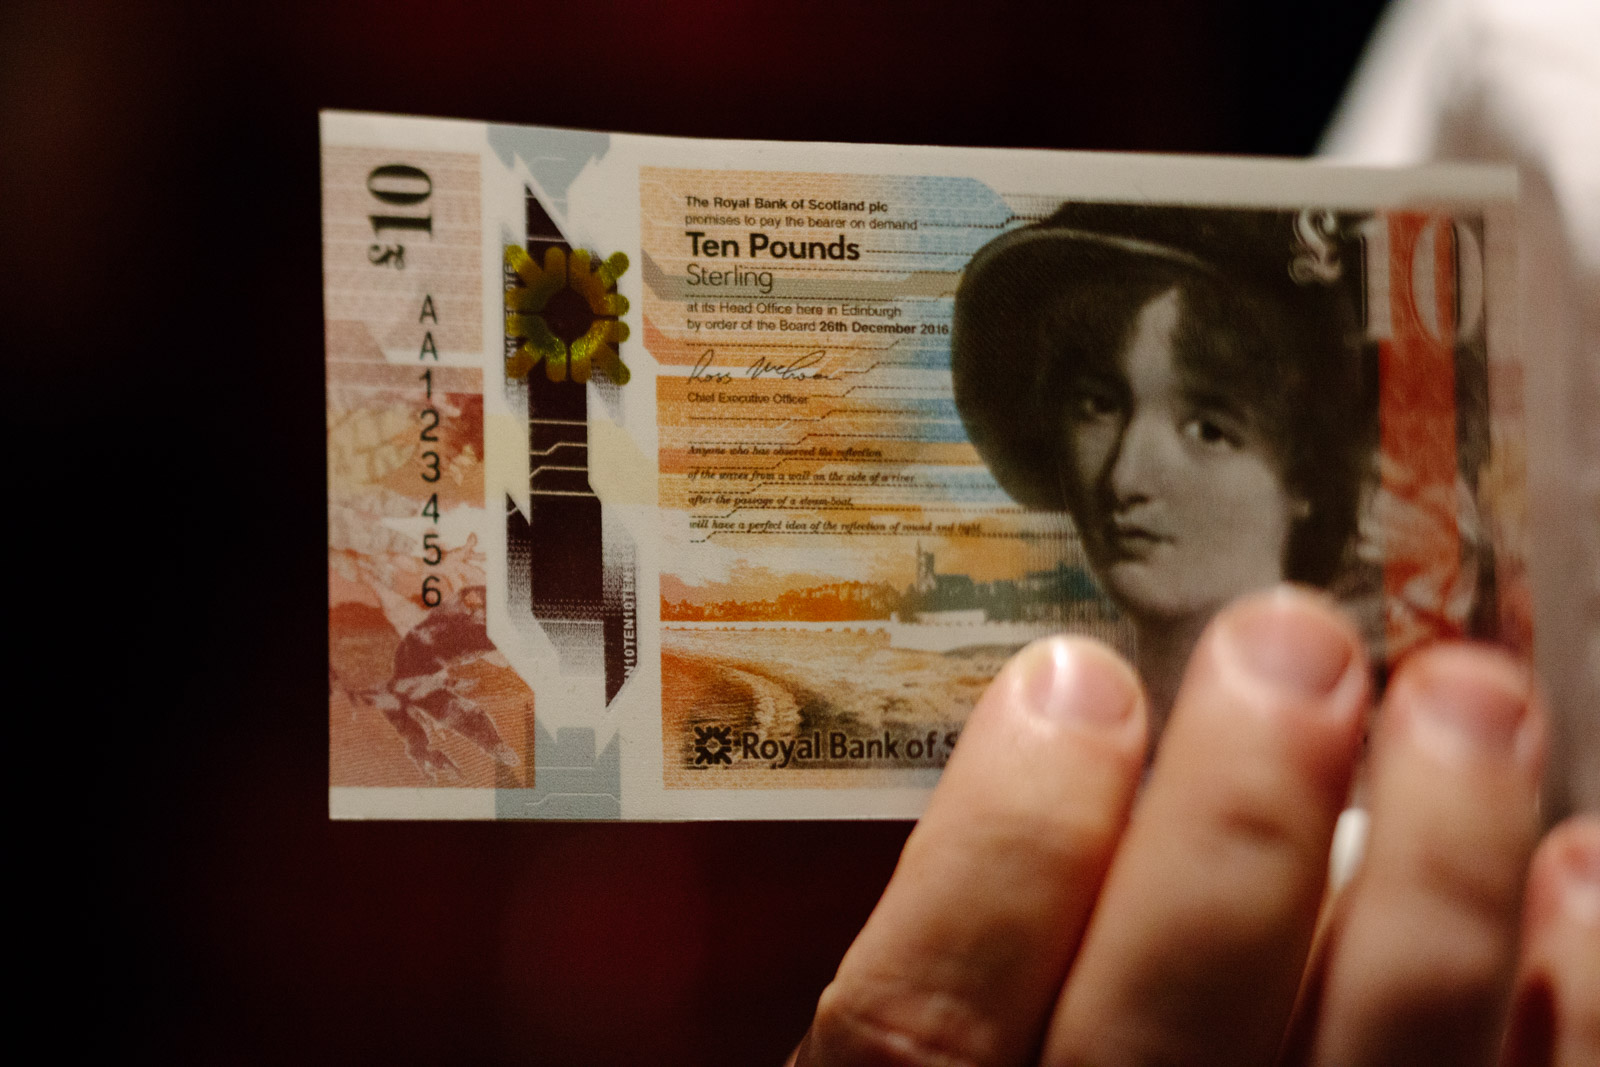 Royal Bank of Scotland's new ten pound note